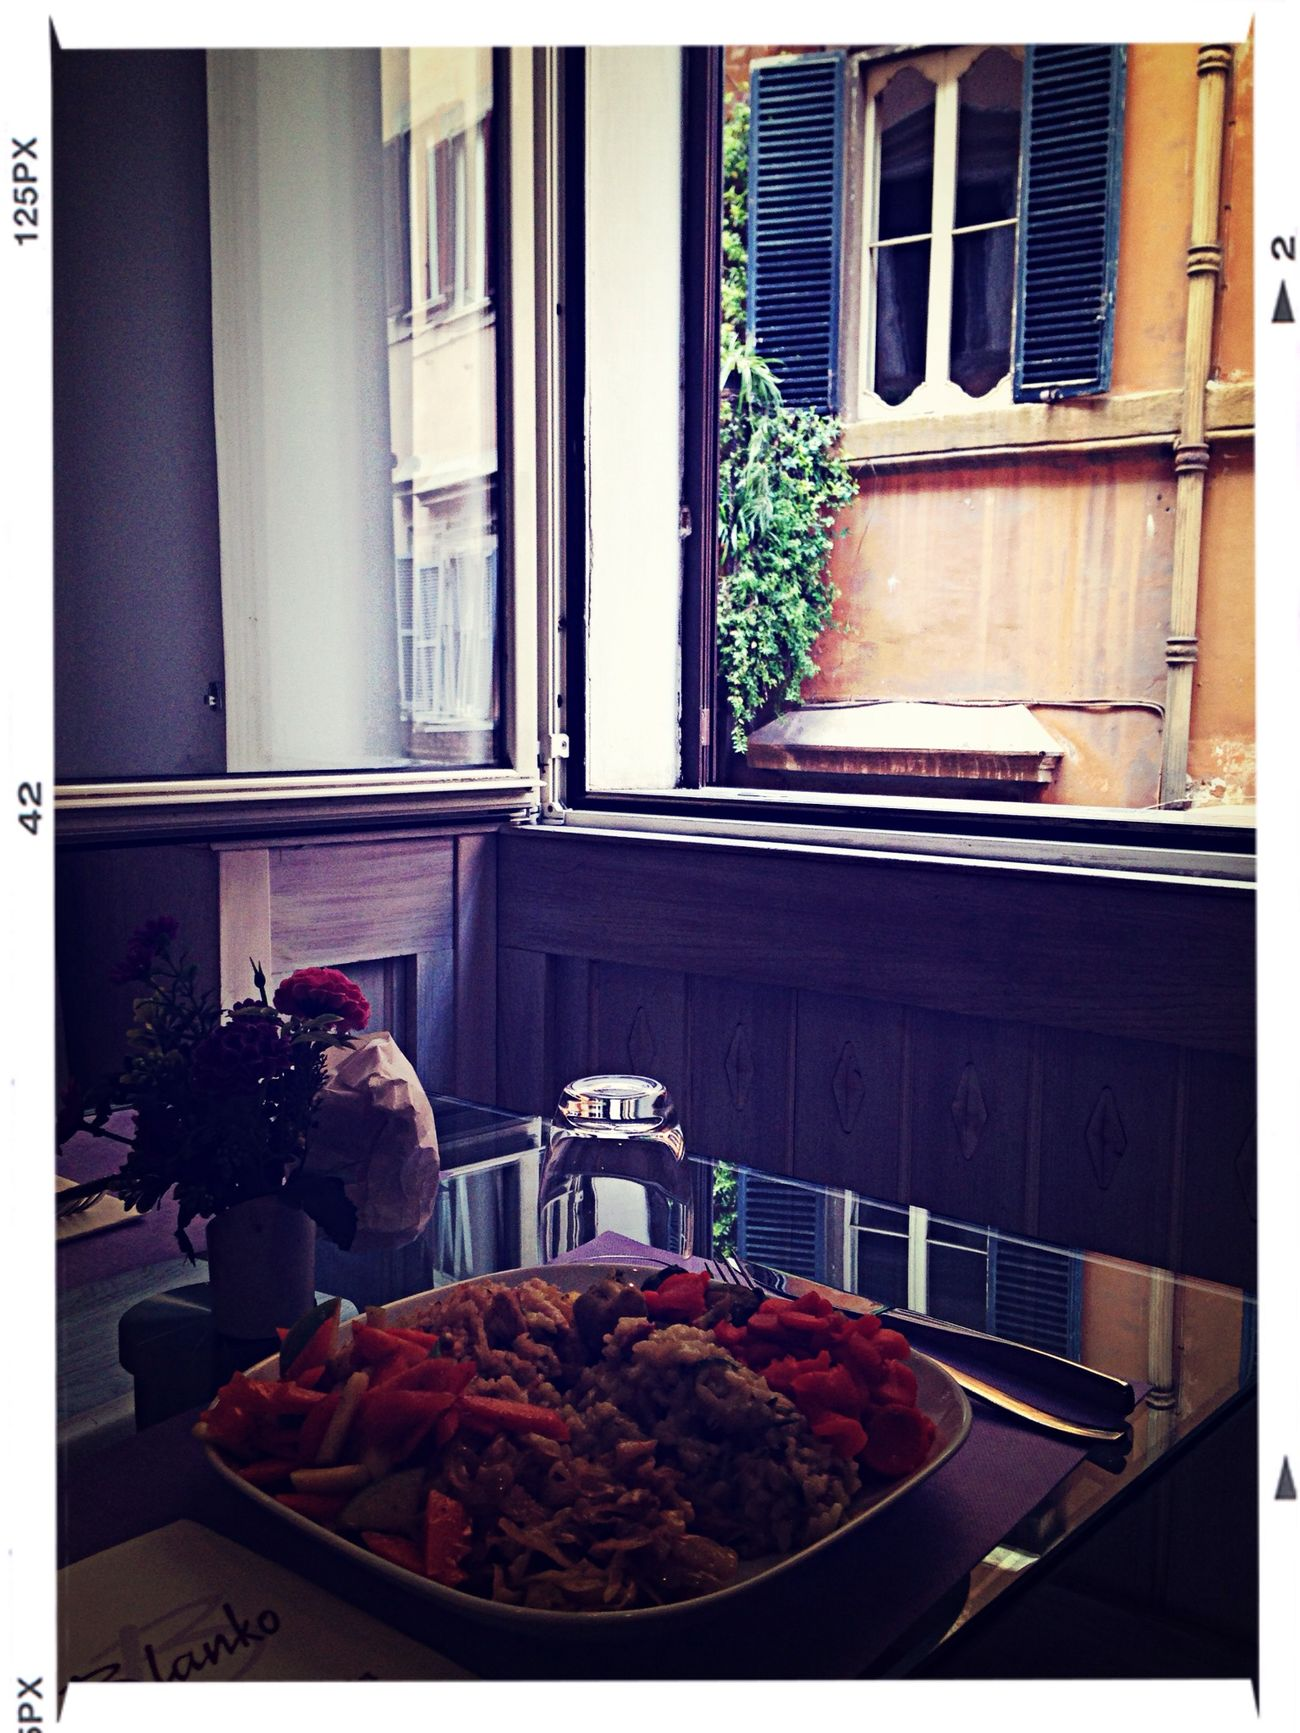 Italian Food Lunch Time! Dietfood Blankorome#